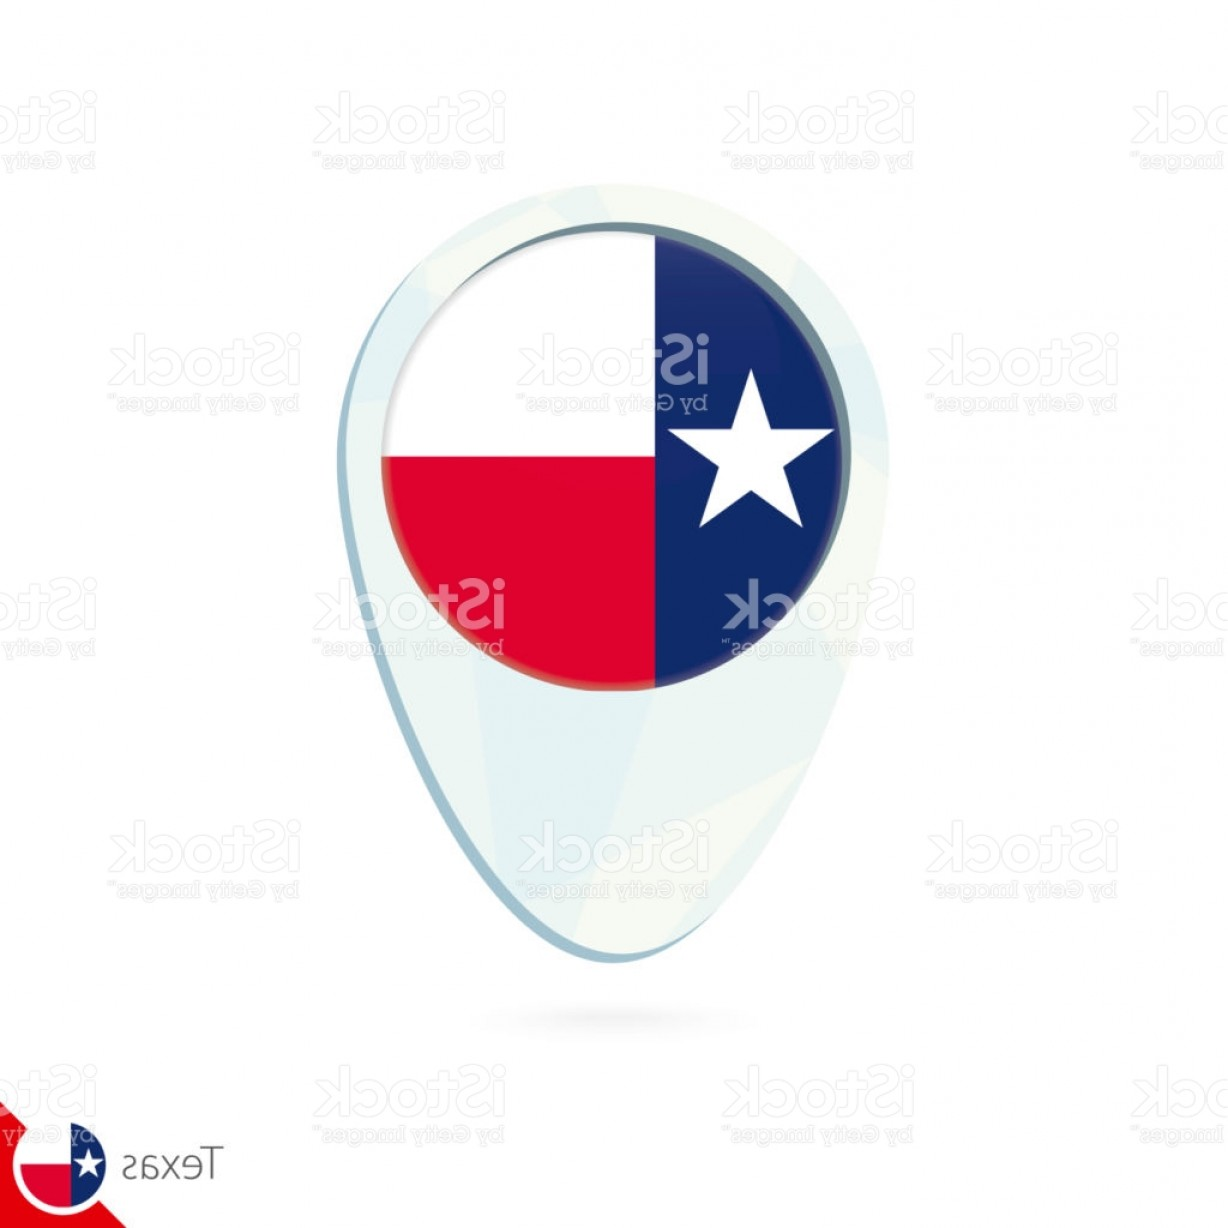 Texas Flag Vector Art: Usa State Texas Flag Location Map Pin Icon On White Background Gm